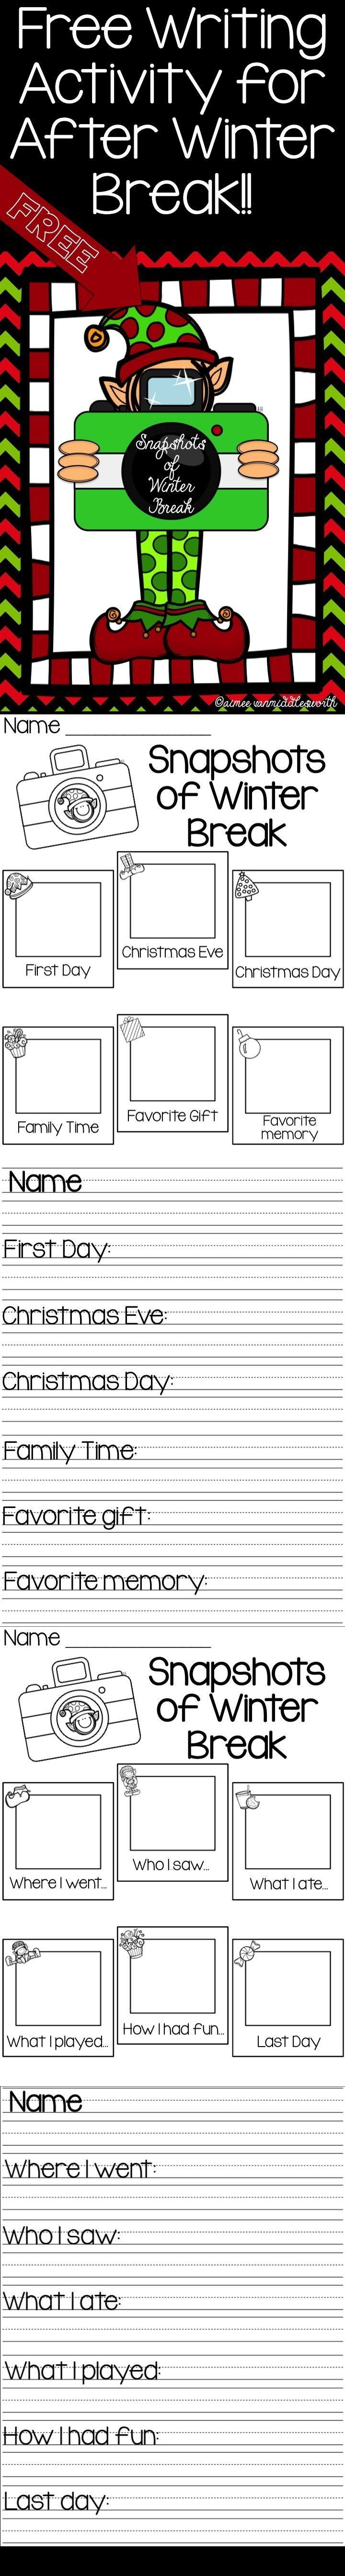 FREEBIE!!! Student writing activity for after Winter Break.